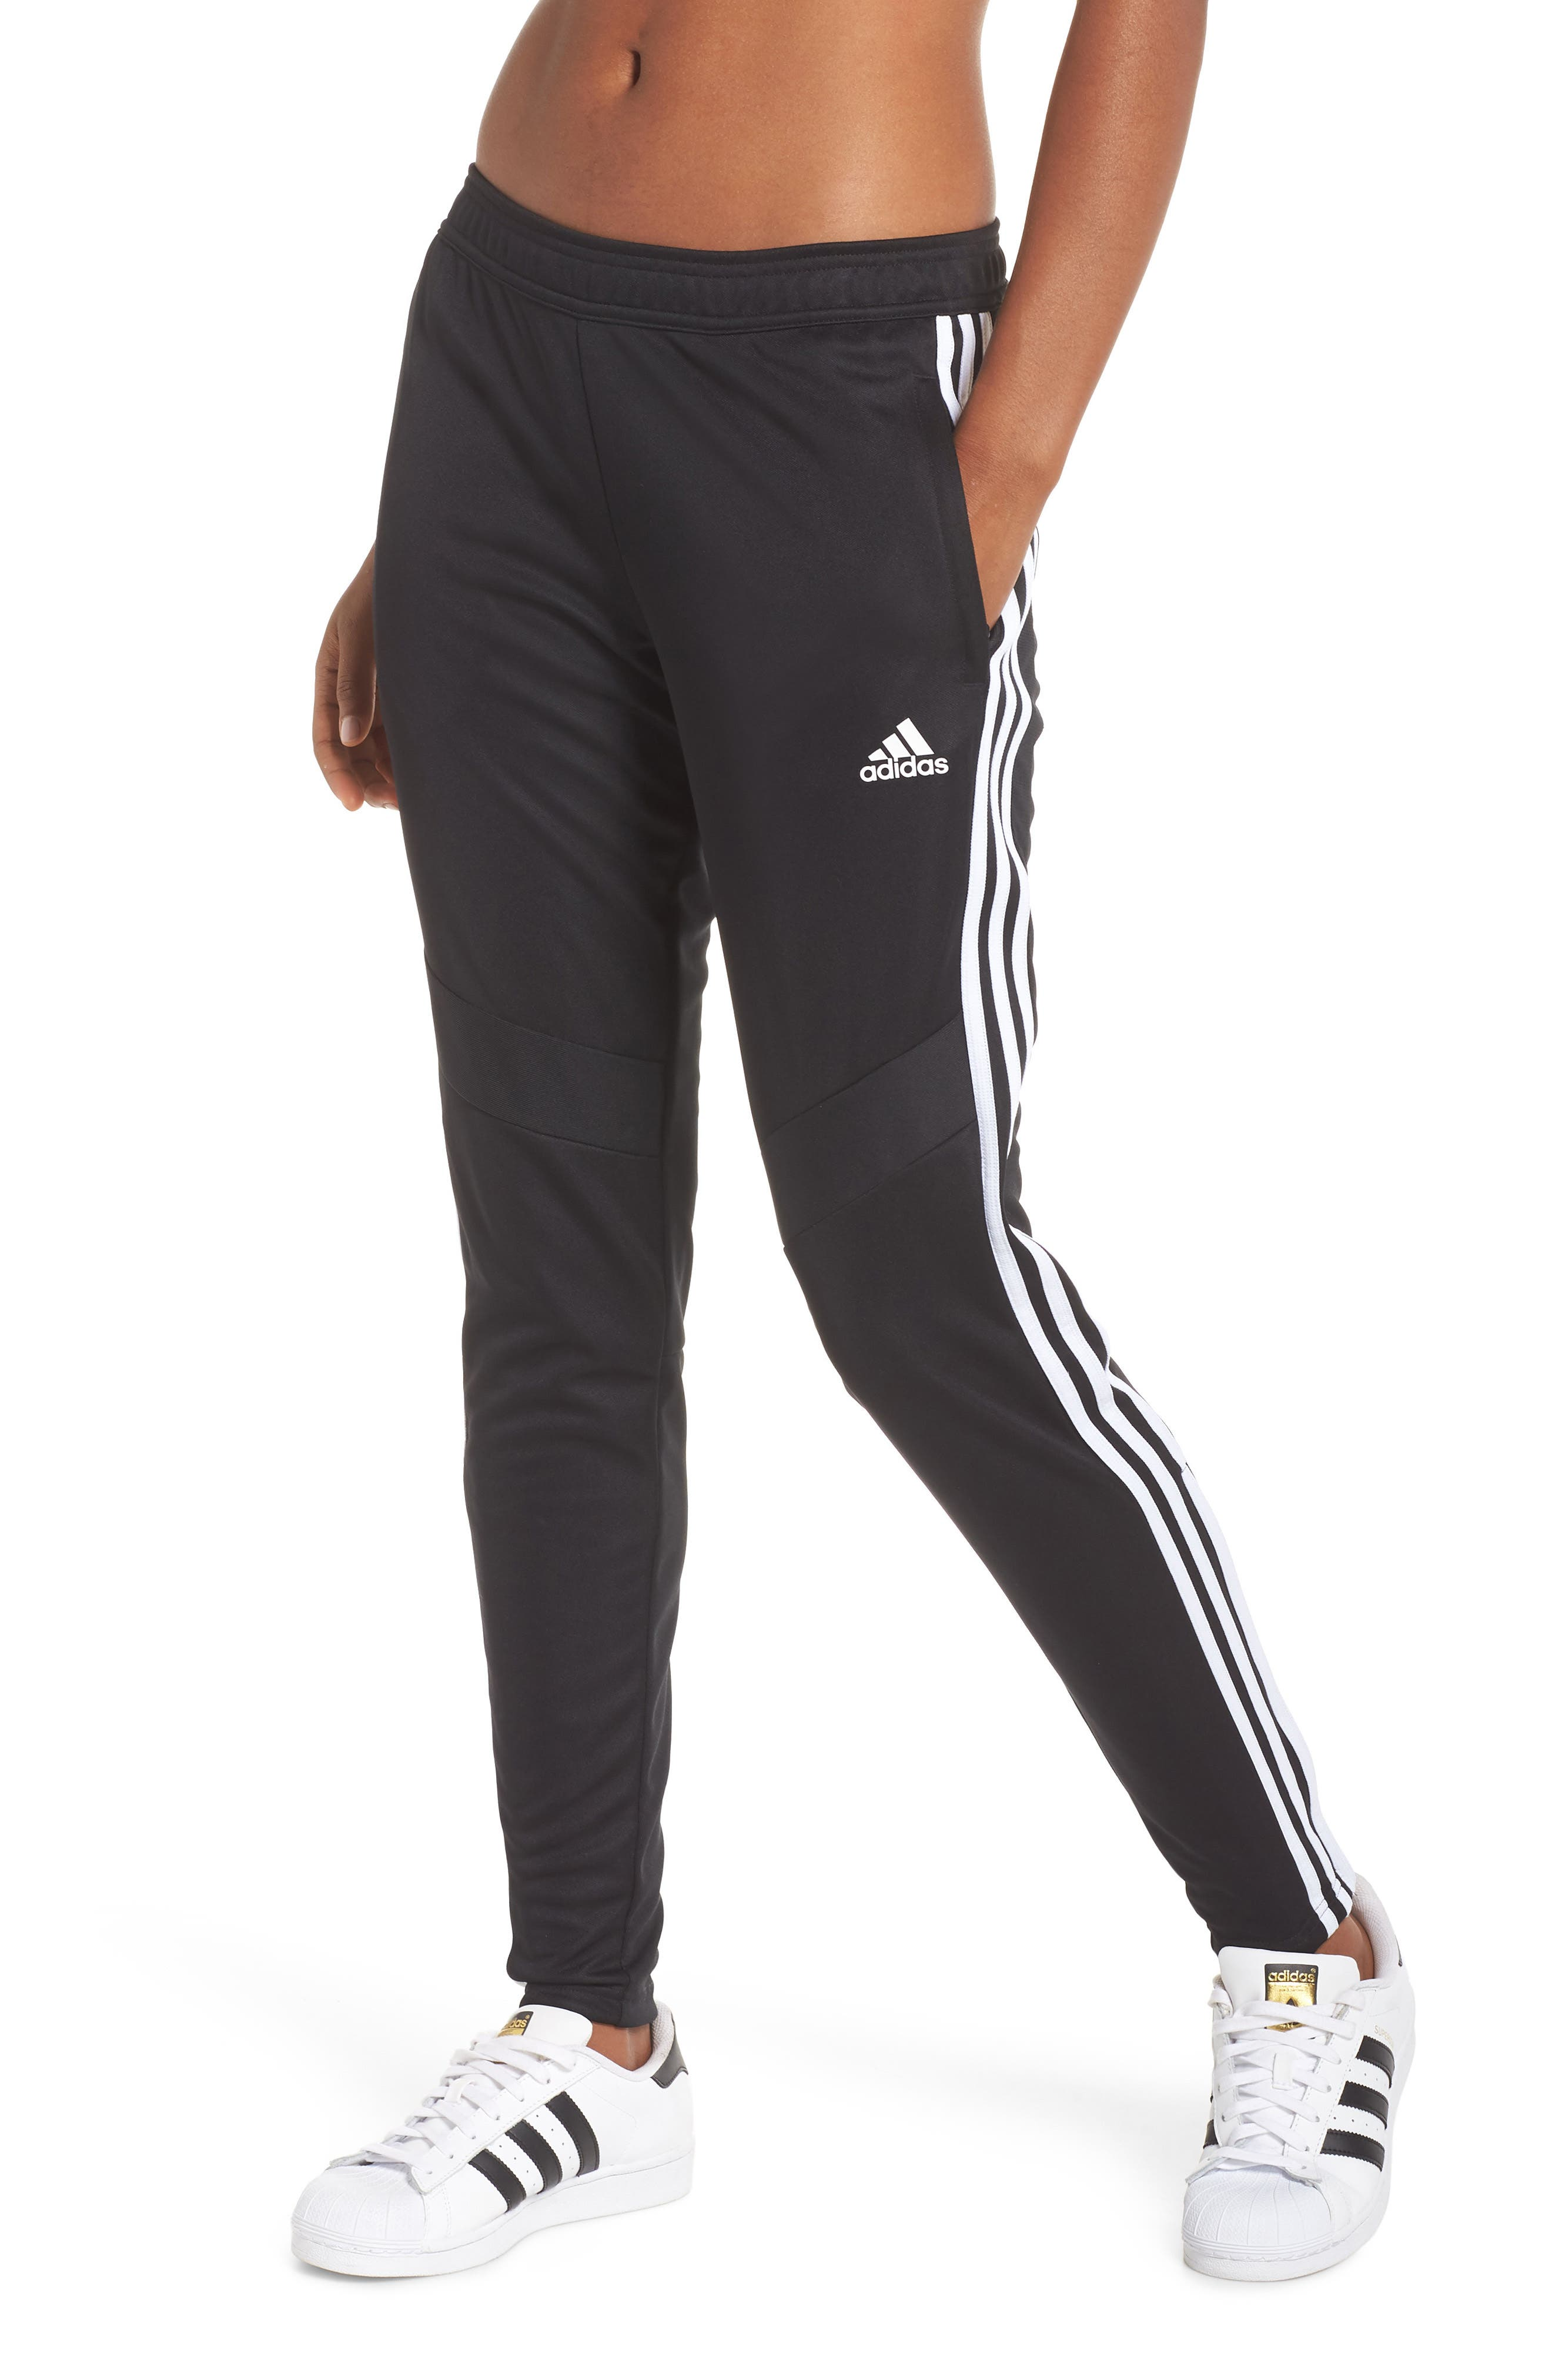 19c92f28b Women's Adidas Pants & Leggings | Nordstrom